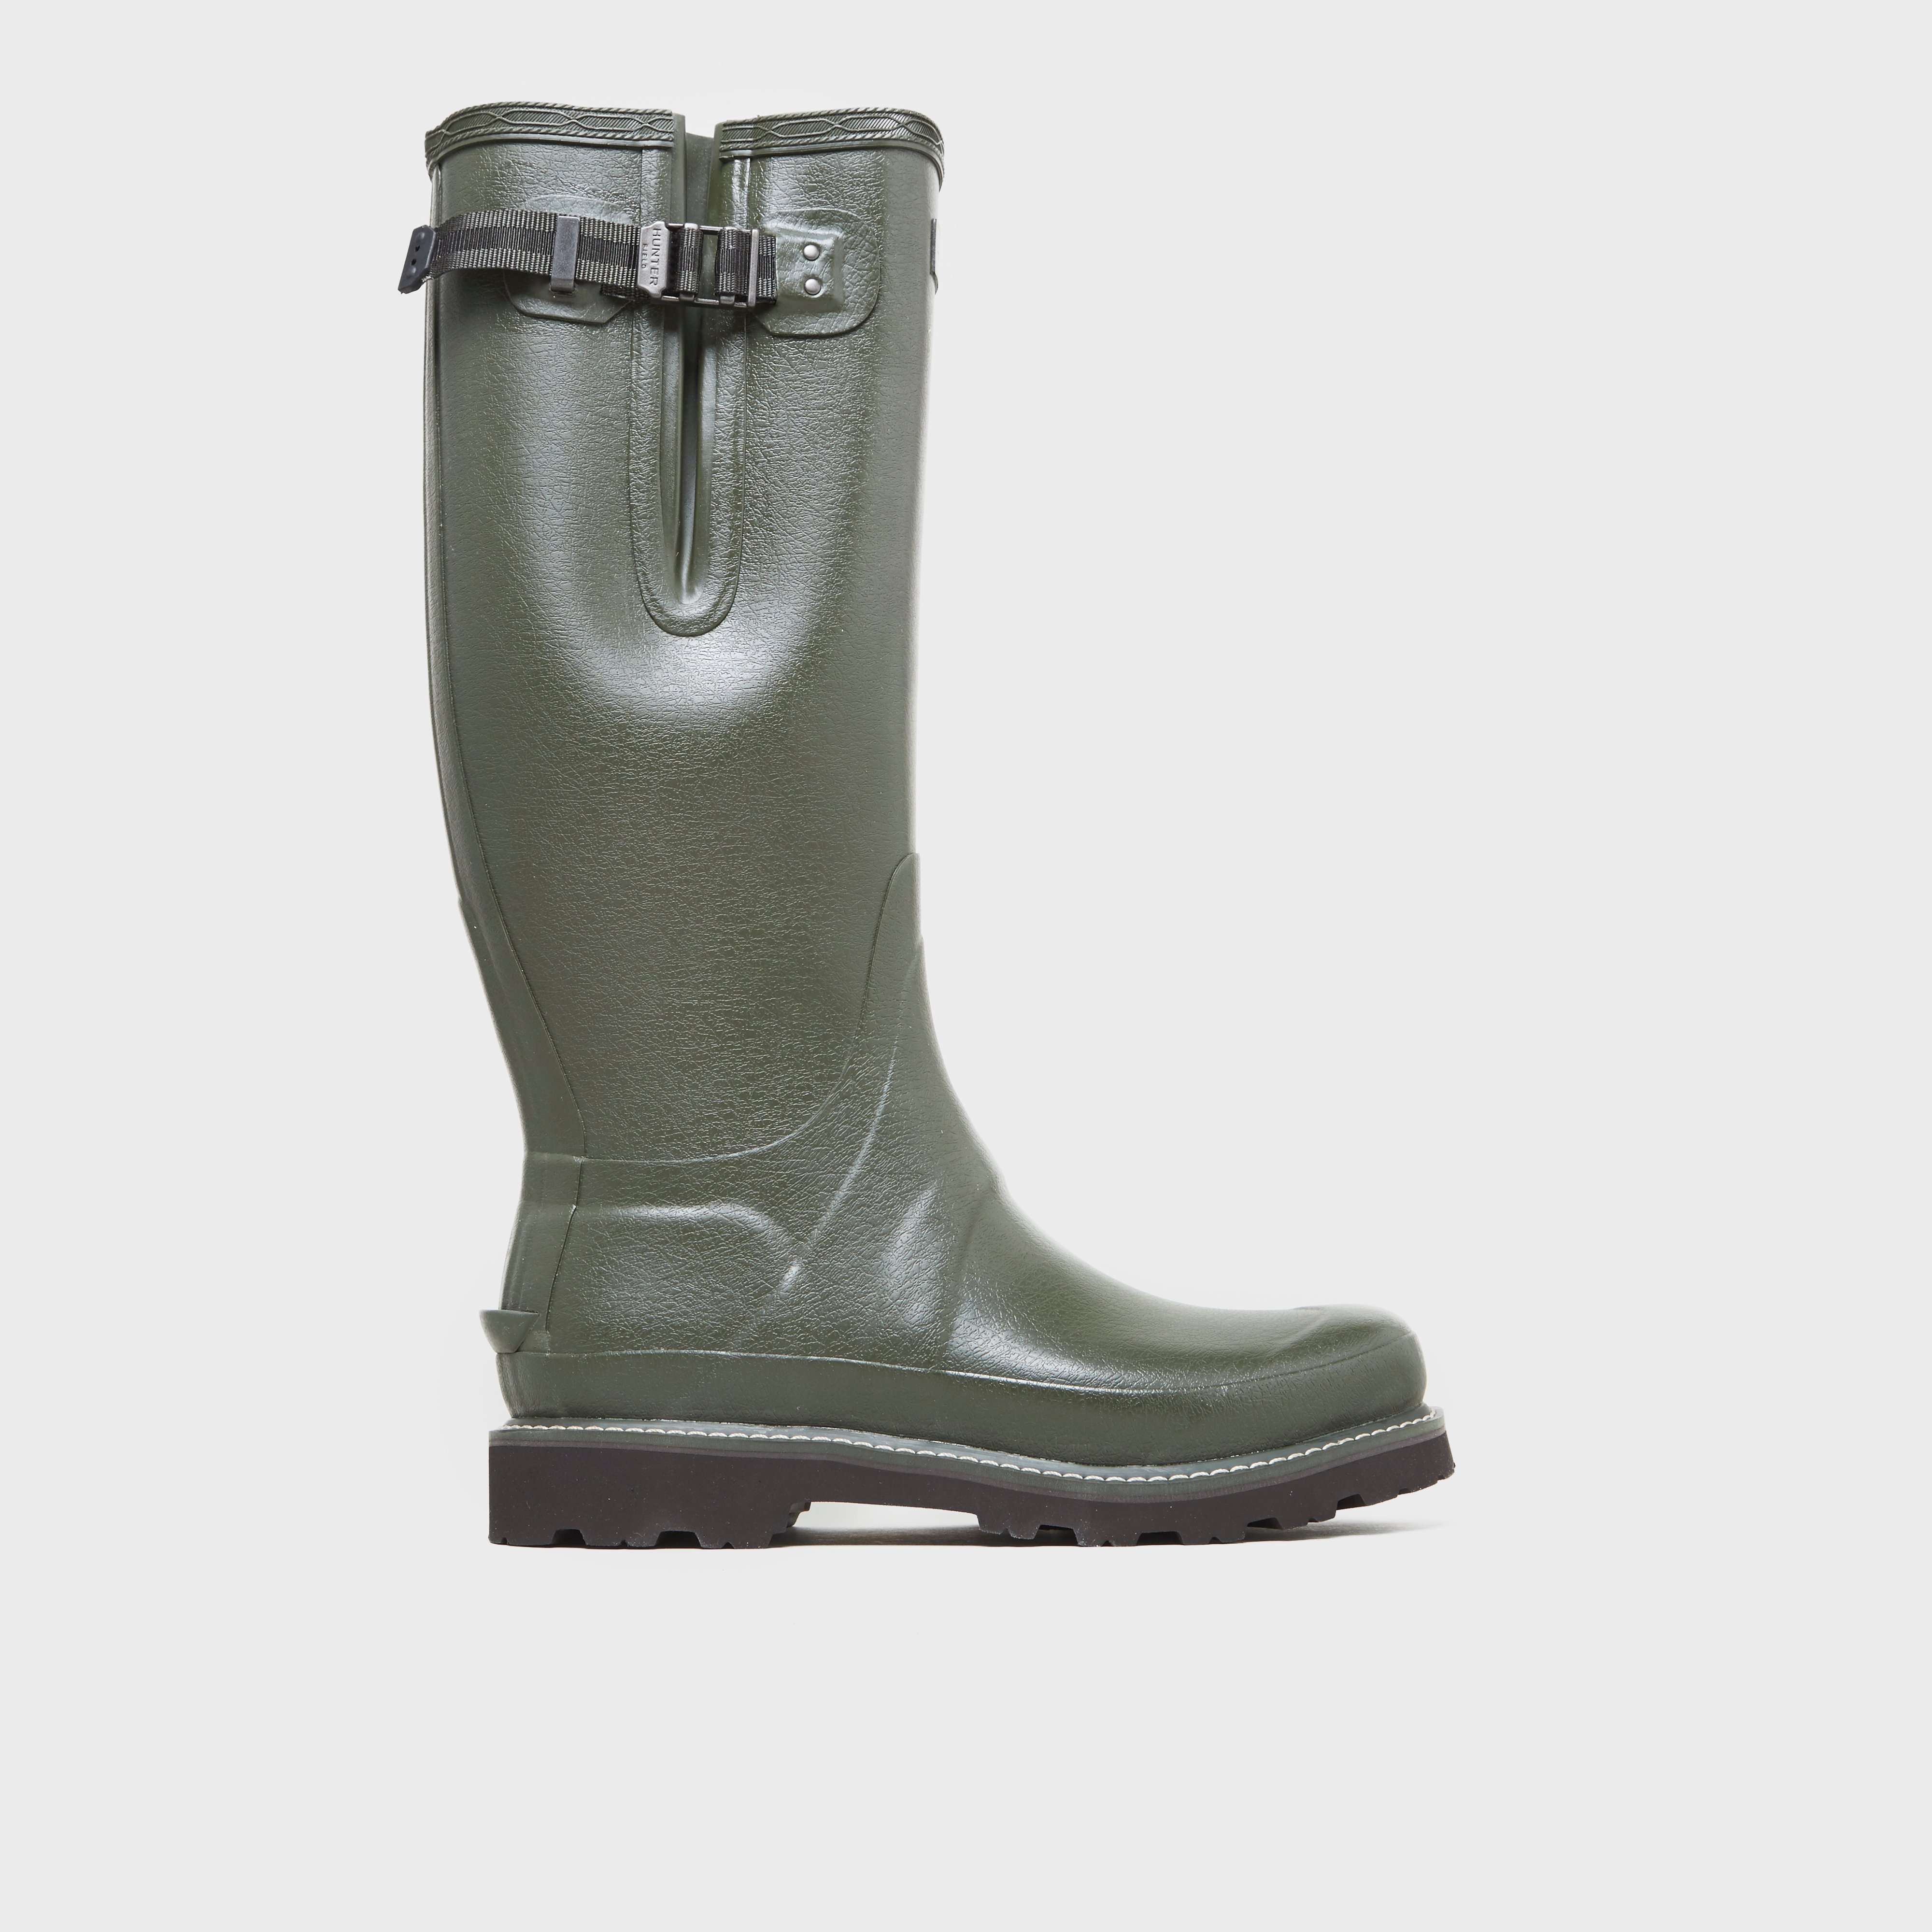 HUNTER Men's Balmoral Wellington Boot